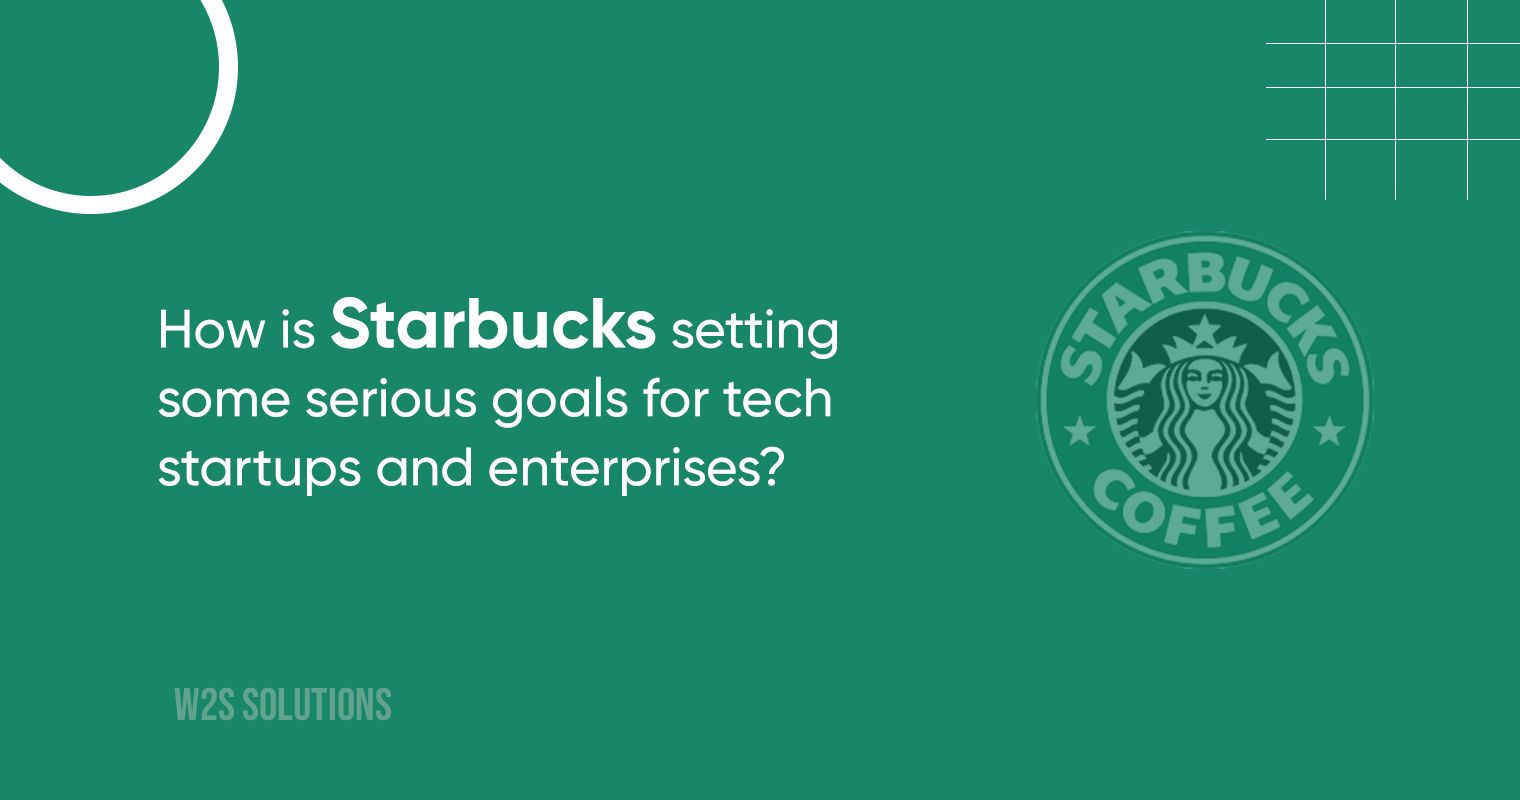 How is Starbucks setting some serious goals for tech startups and enterprises?